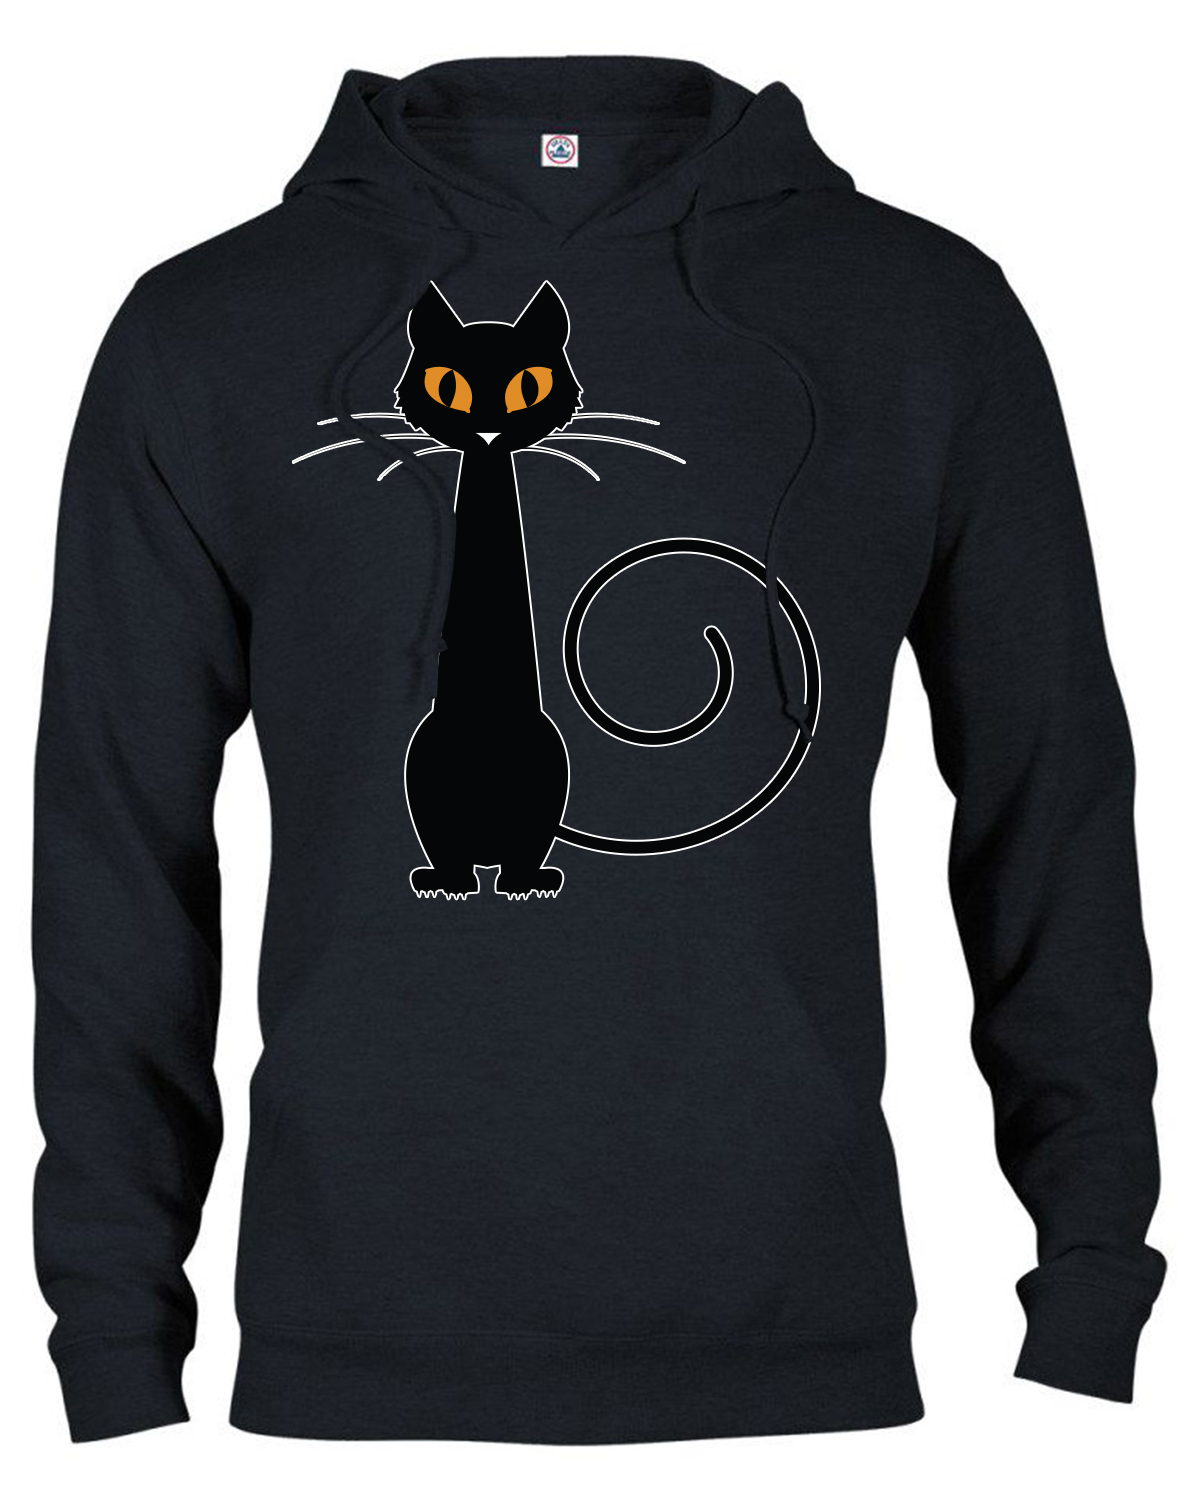 Adult Unisex Heavyweight Halloween Black Cat Print S-3X Black Hoodie.  99200-H076